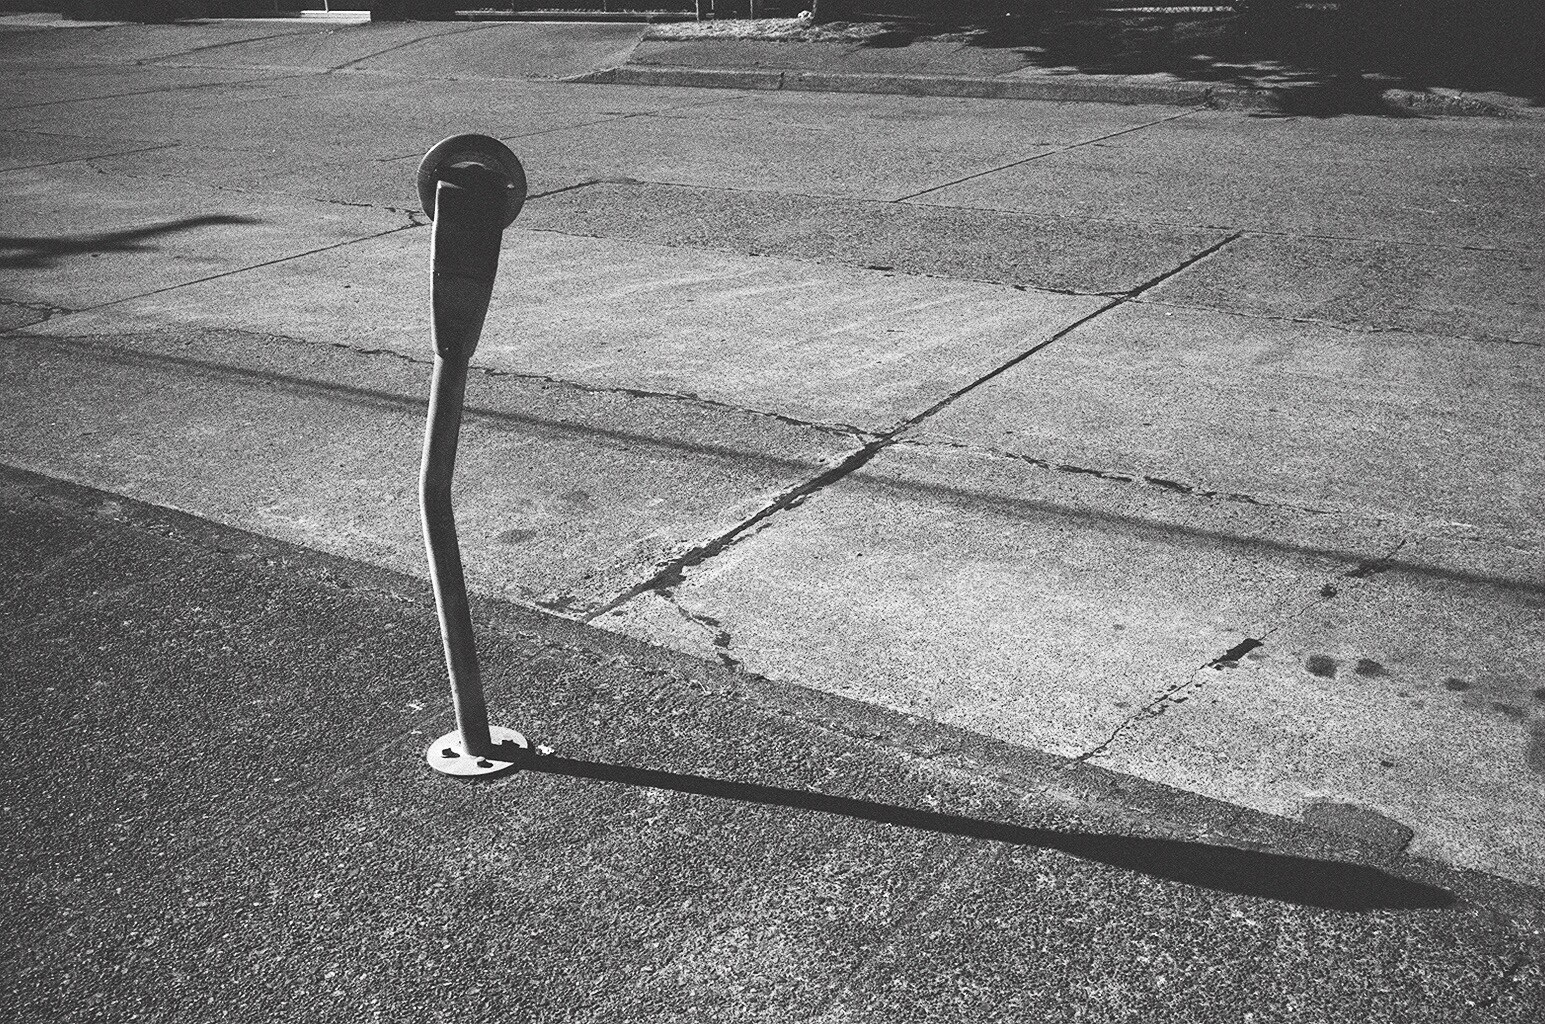 Lone parking meter. Berkeley, 2015